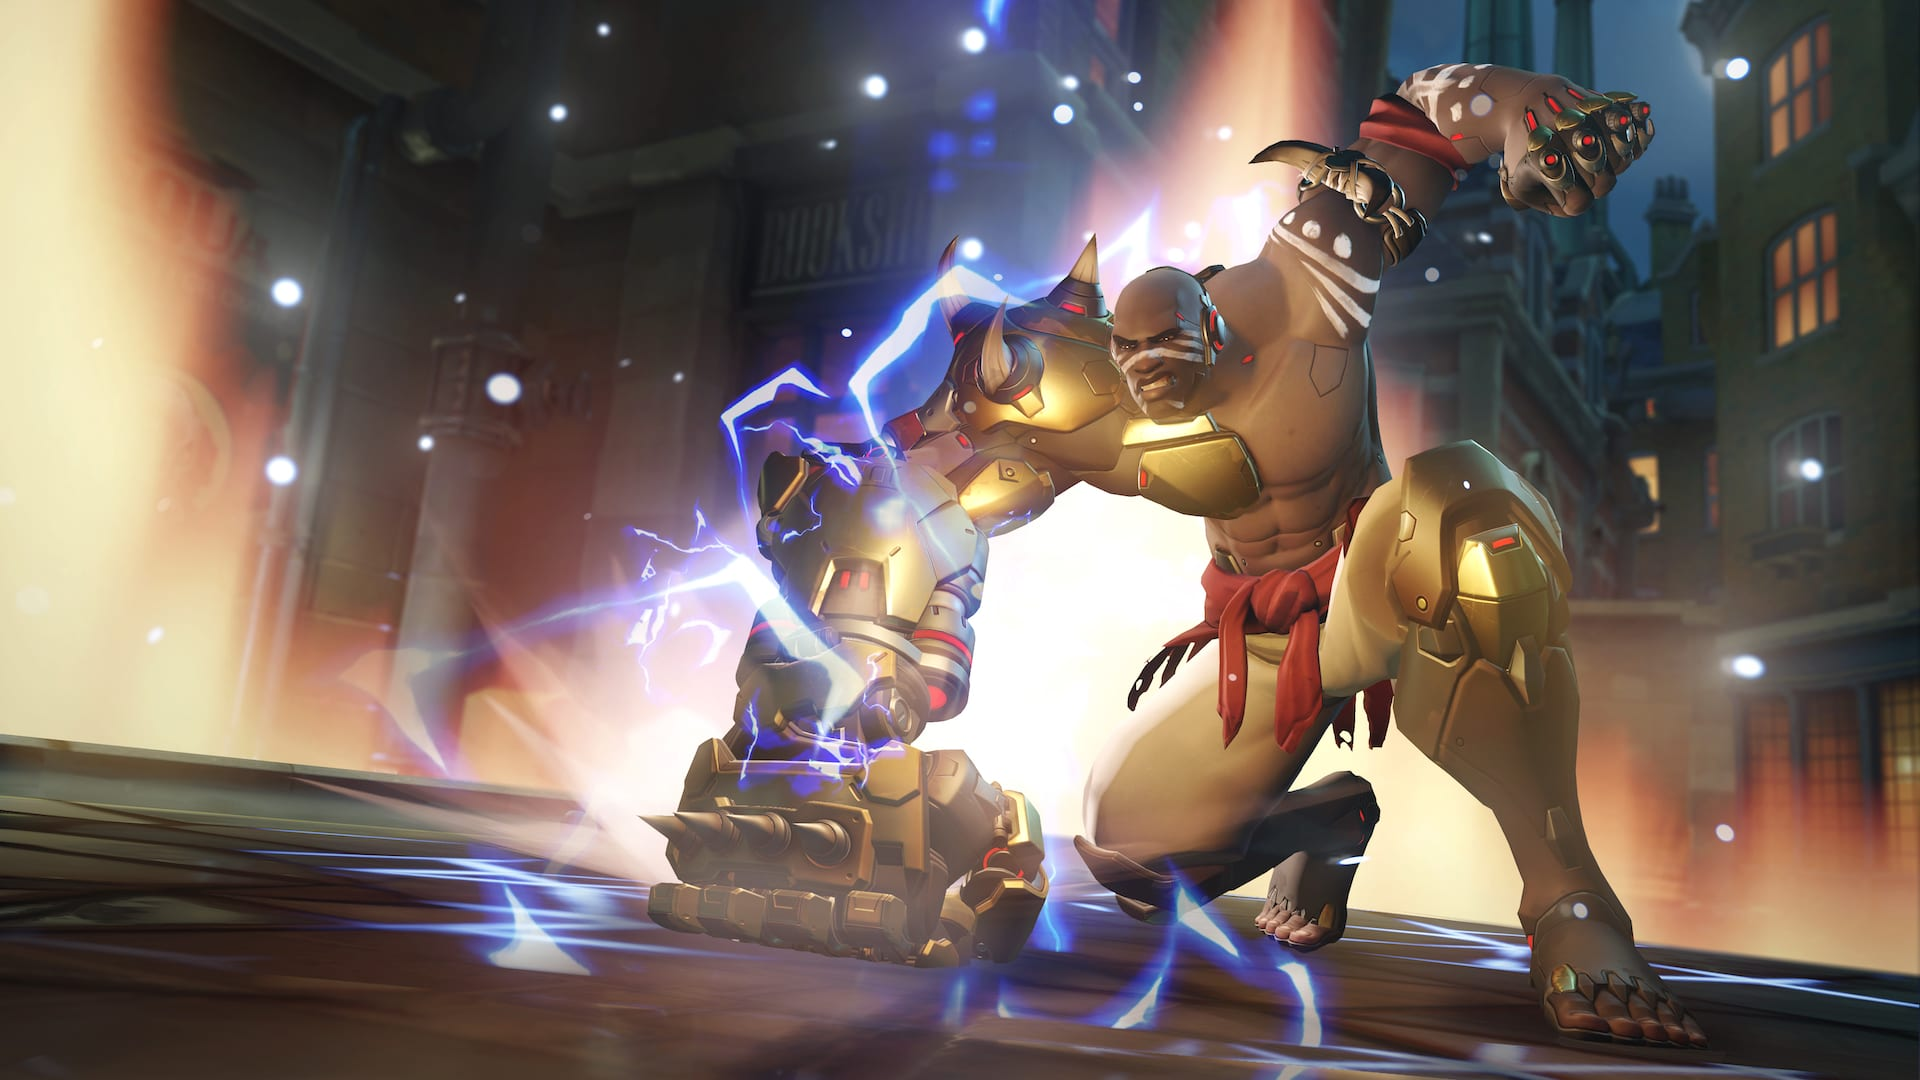 An Overwatch Workshop creation by trappi allows Doomfist to Rocket Punch straight up.